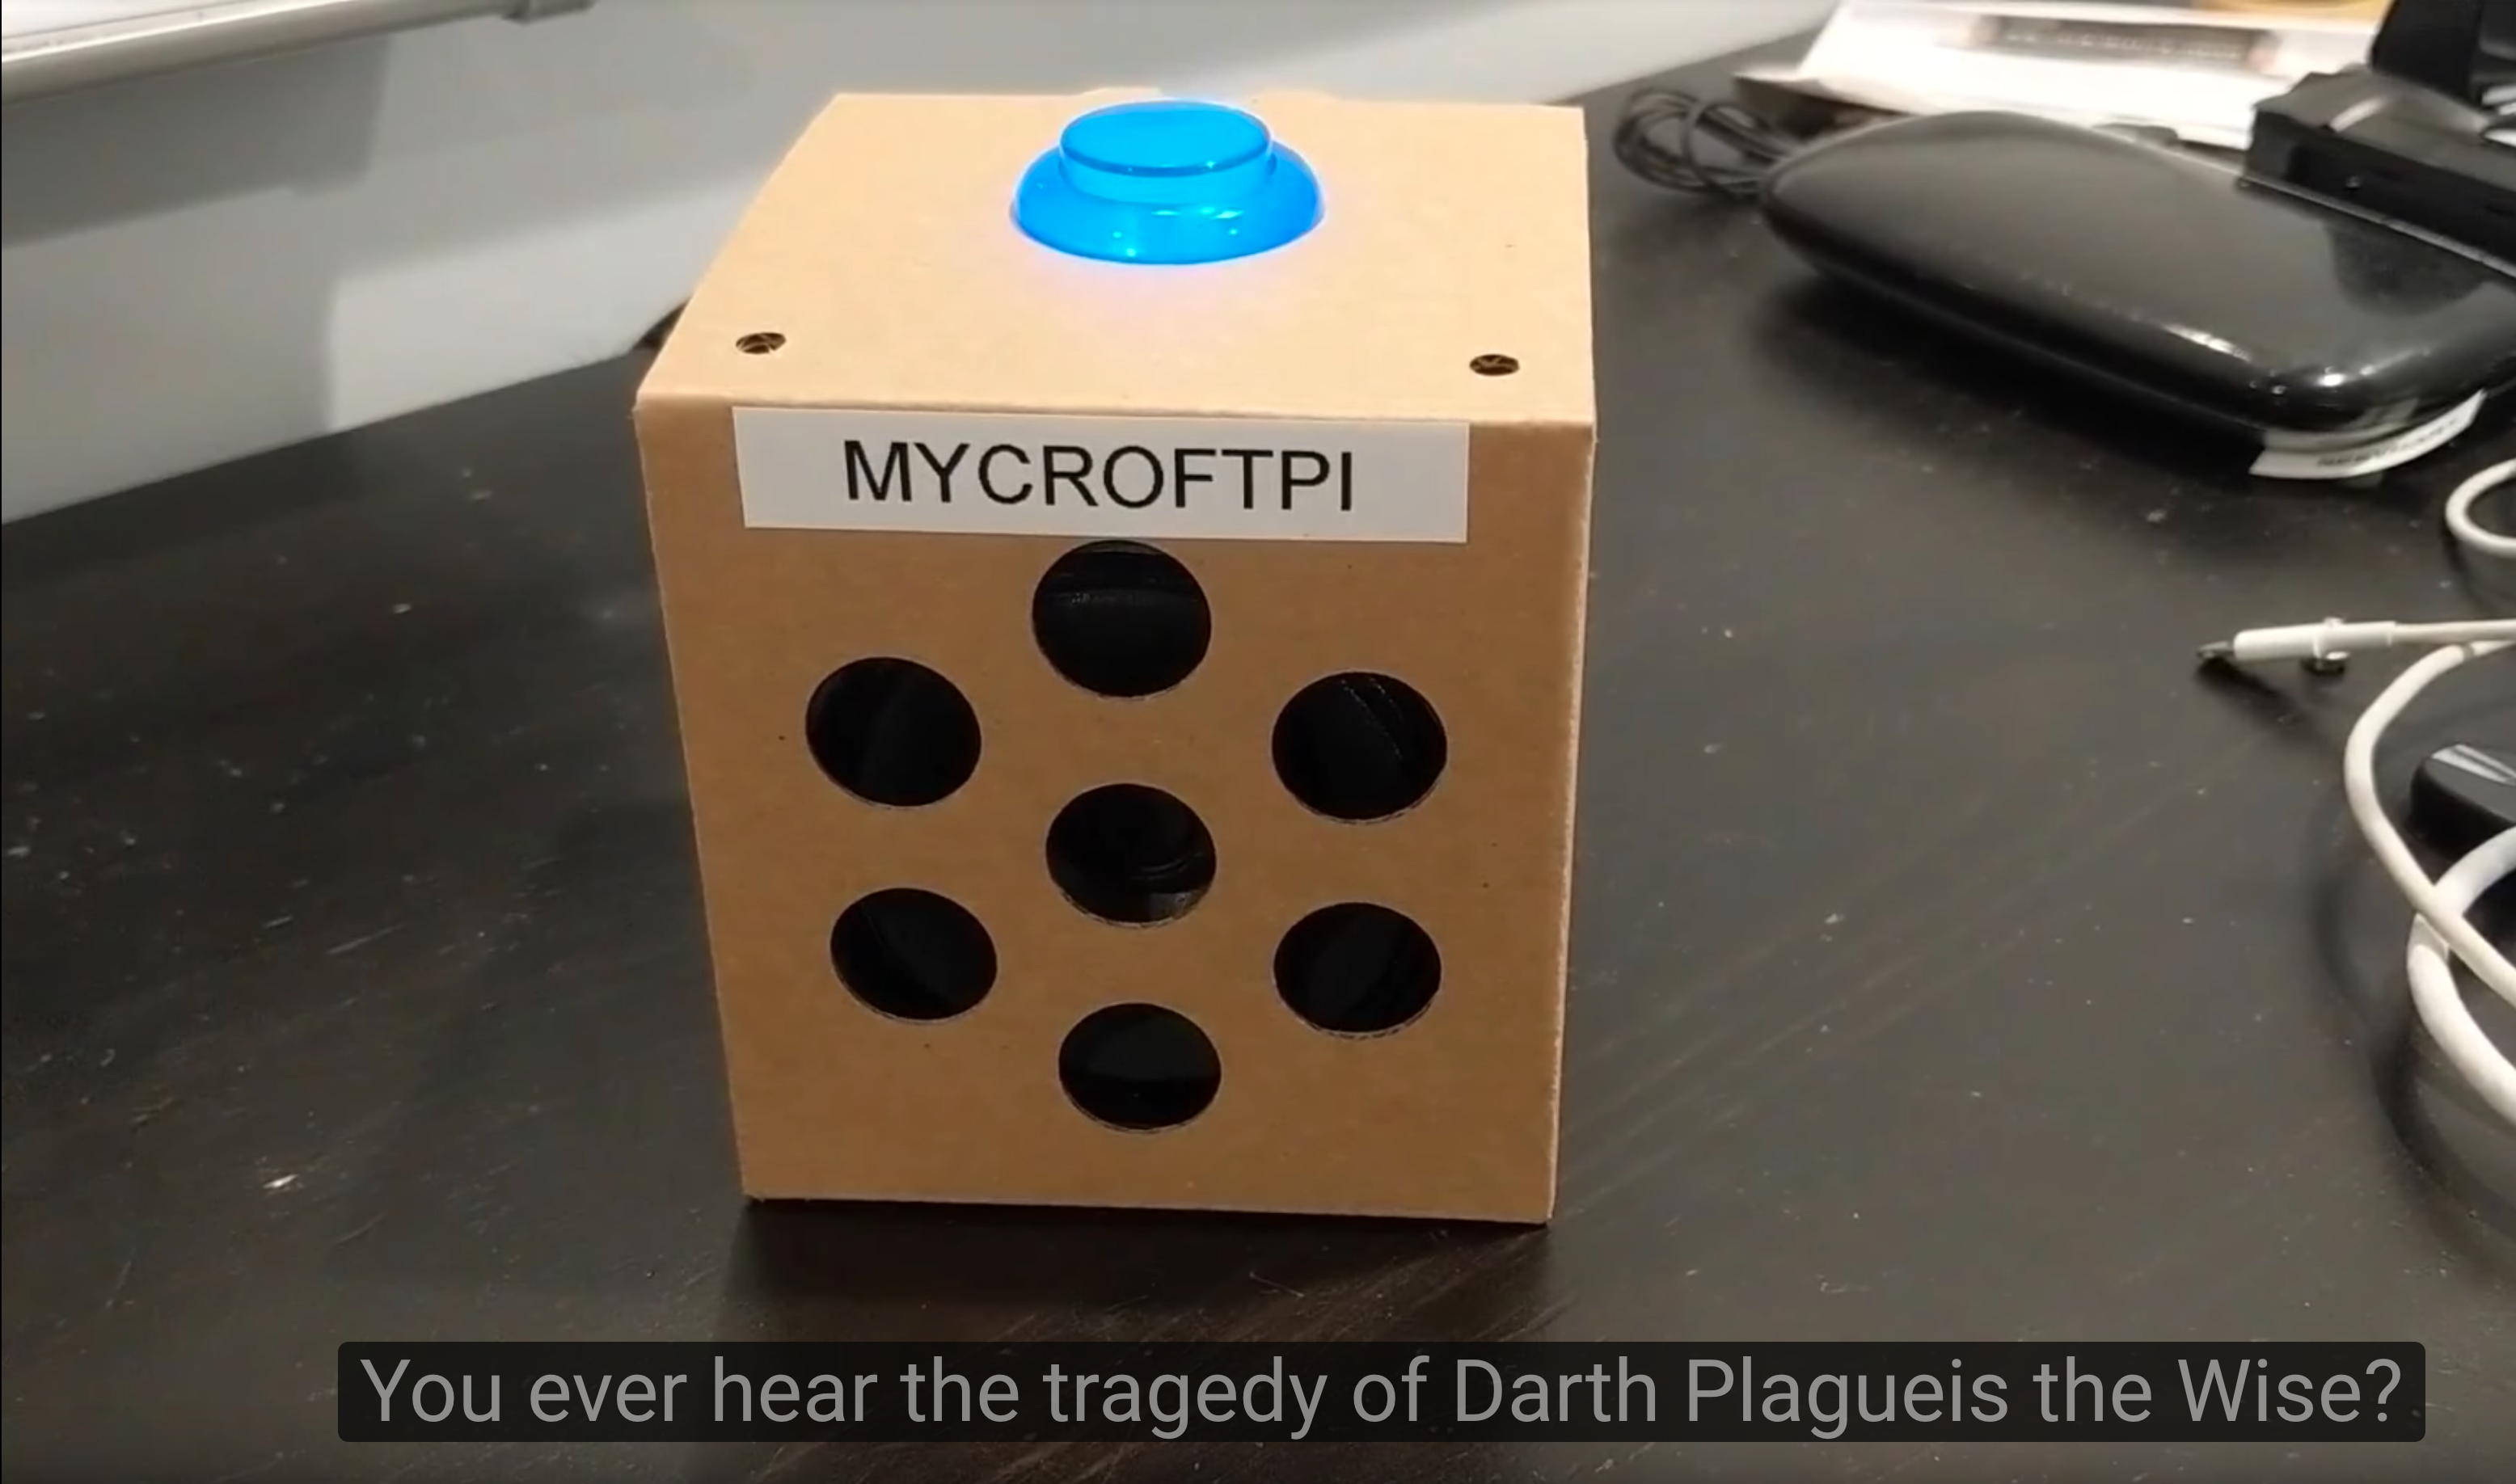 Making a Star Wars Day Skill for Mycroft - the open source voice assistant